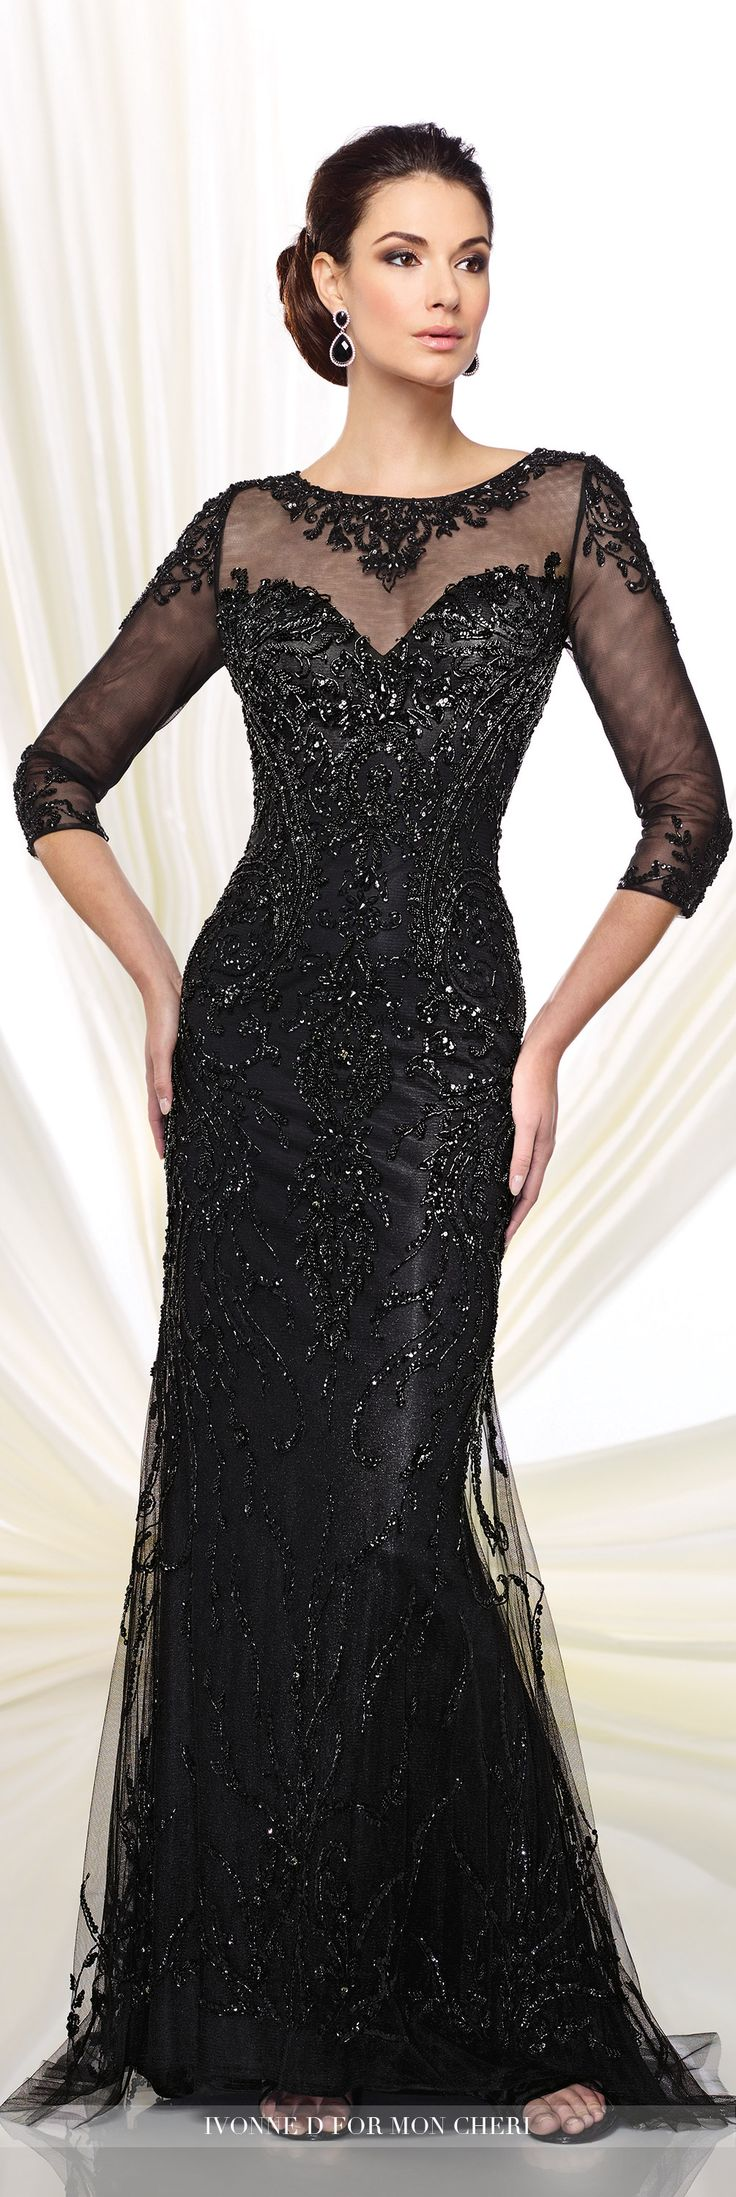 17 best ideas about Black Evening Gowns on Pinterest | Elegant ...